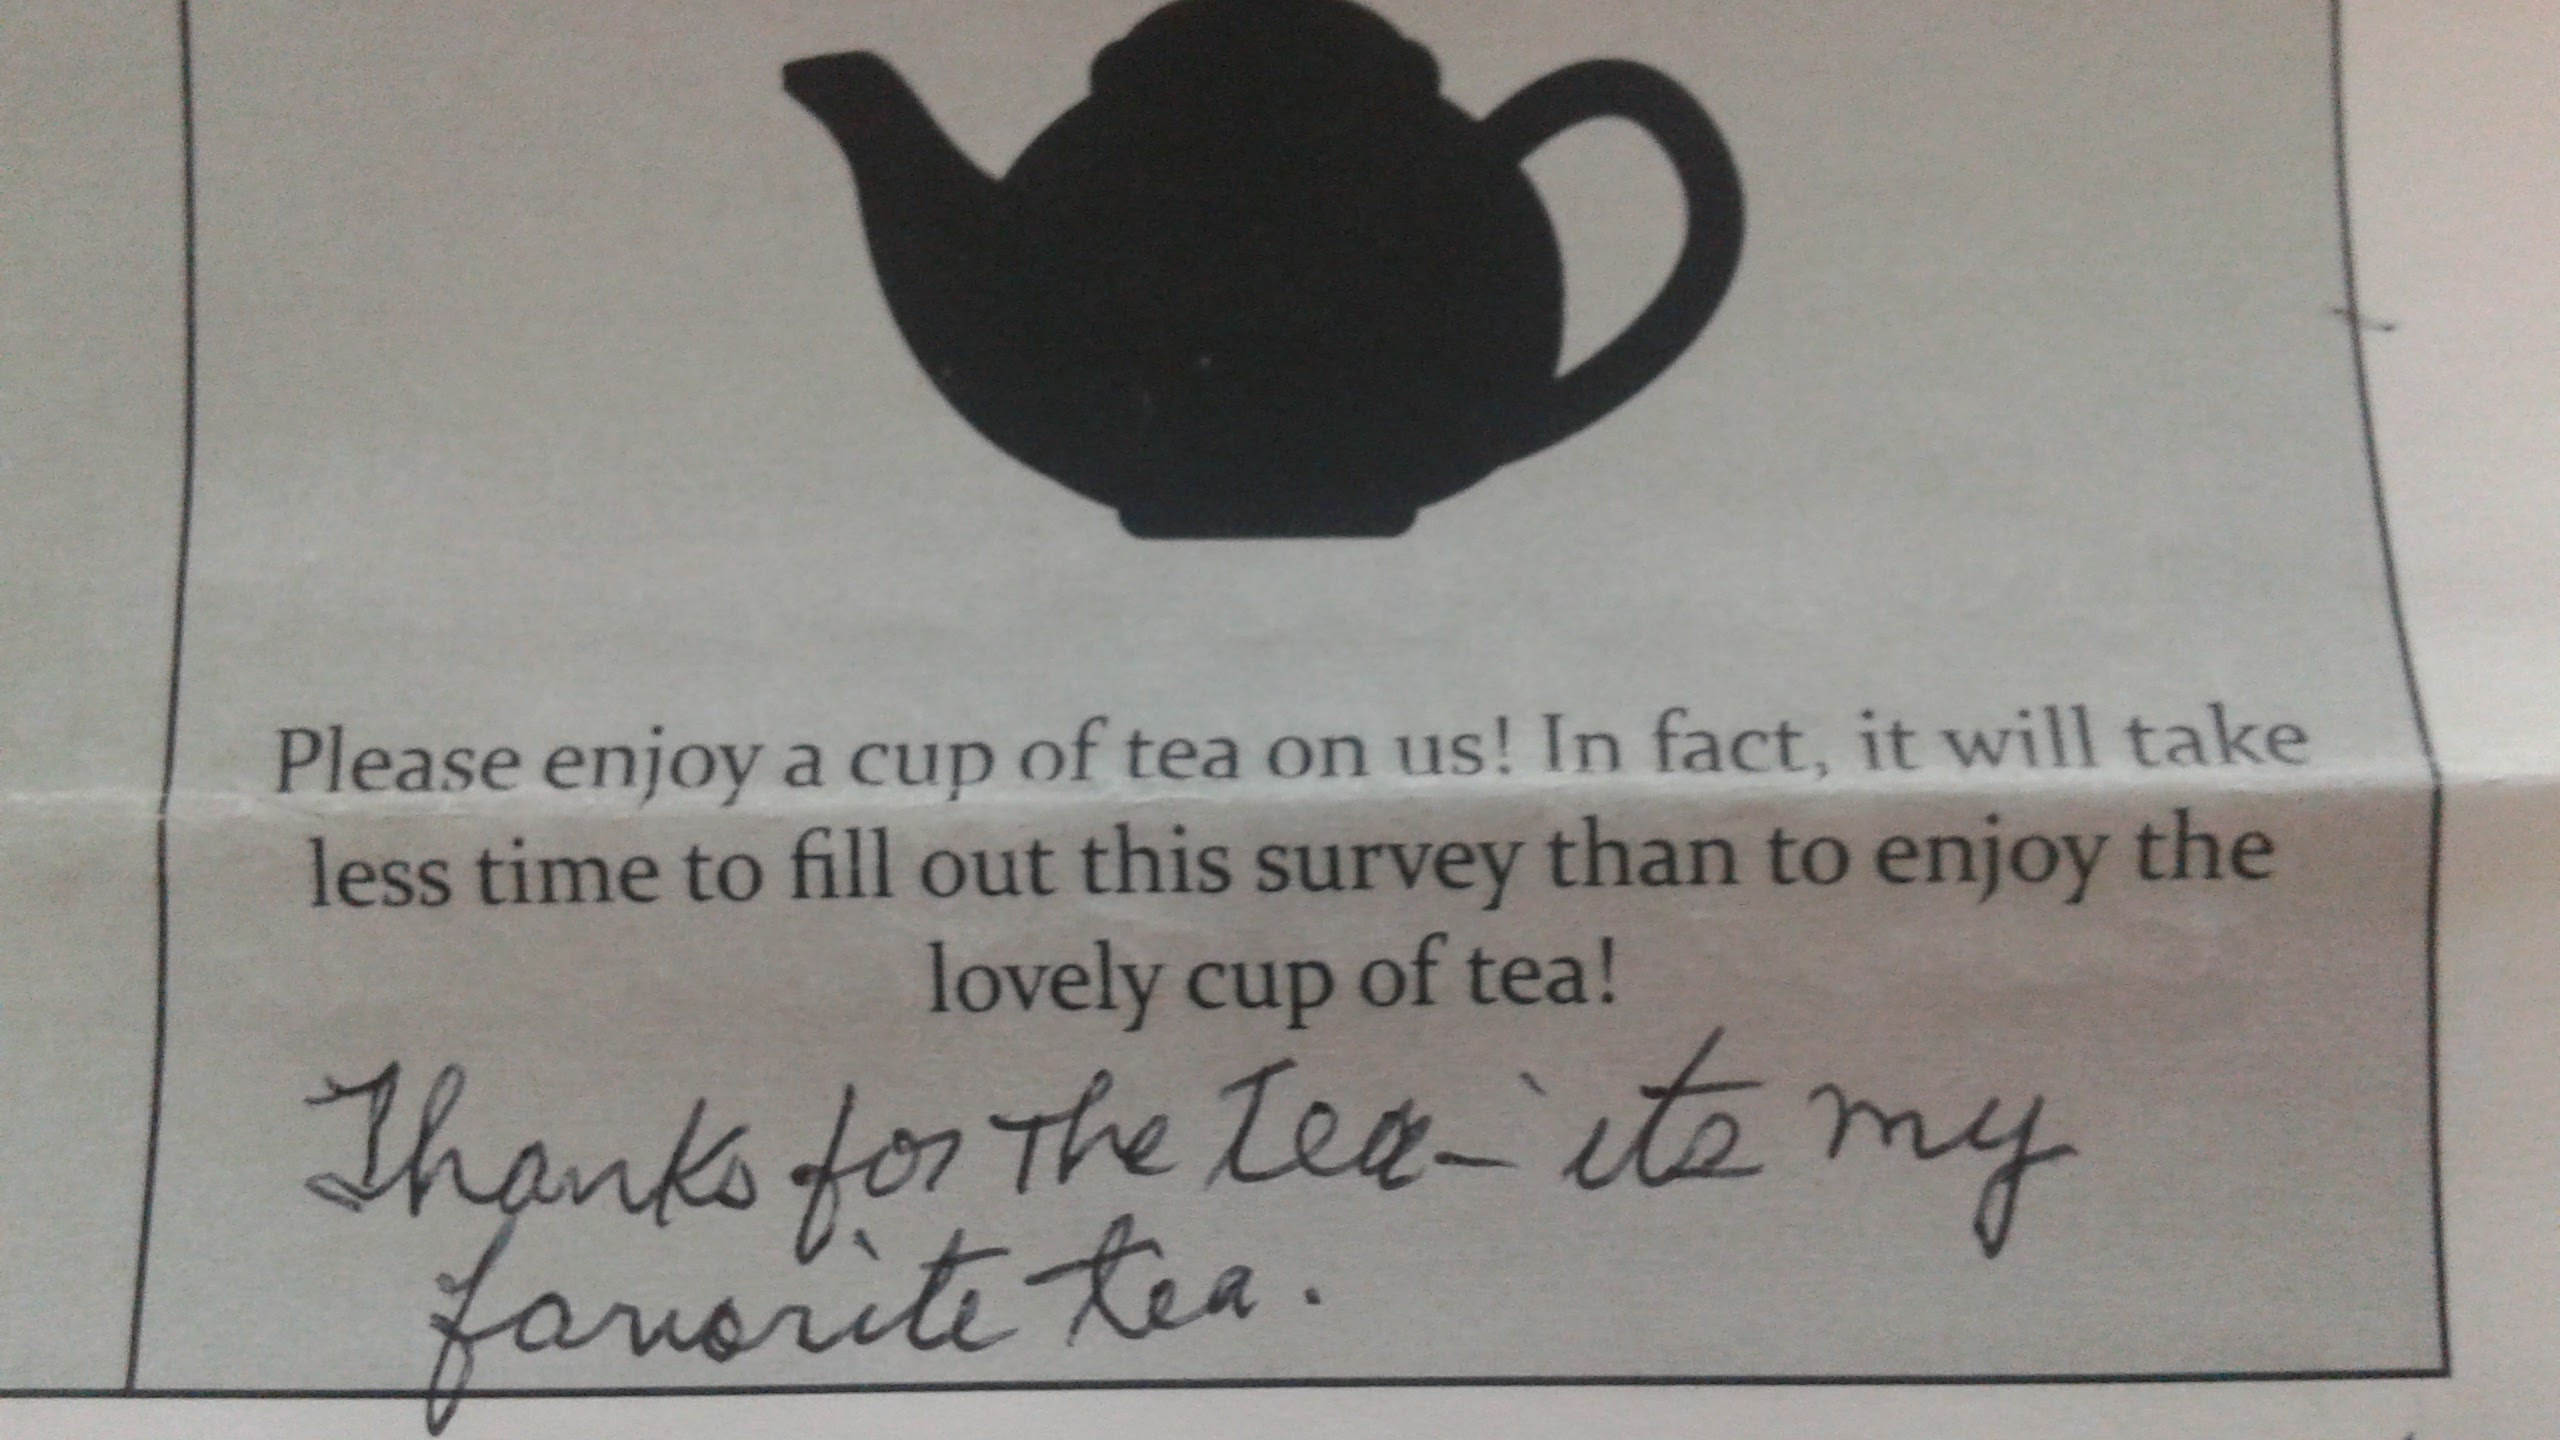 A thank you note written on a returned landholder survey.